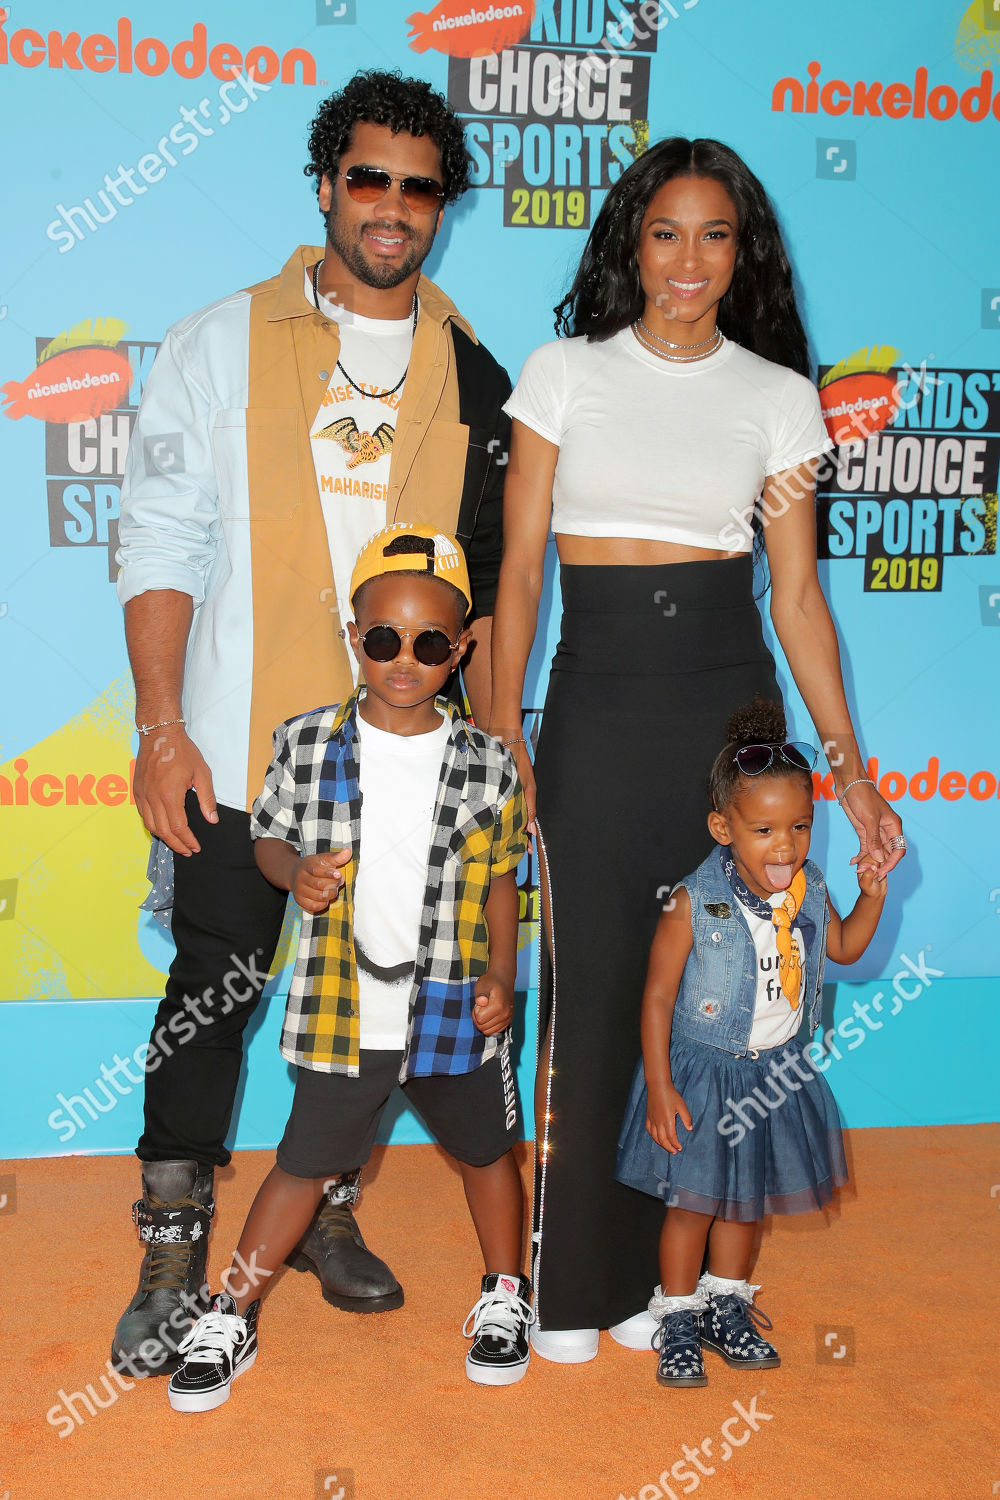 Russell Wilson Ciara Future Zahir Wilburn Sienna Editorial Stock Photo Stock Image Shutterstock Instagram post by future zahir wilburn • dec 18, 2017 at 5:44pm utc. https www shutterstock com editorial image editorial nickelodeon kids choice sports awards arrivals barker hanger los angeles usa 11 jul 2019 10331959do